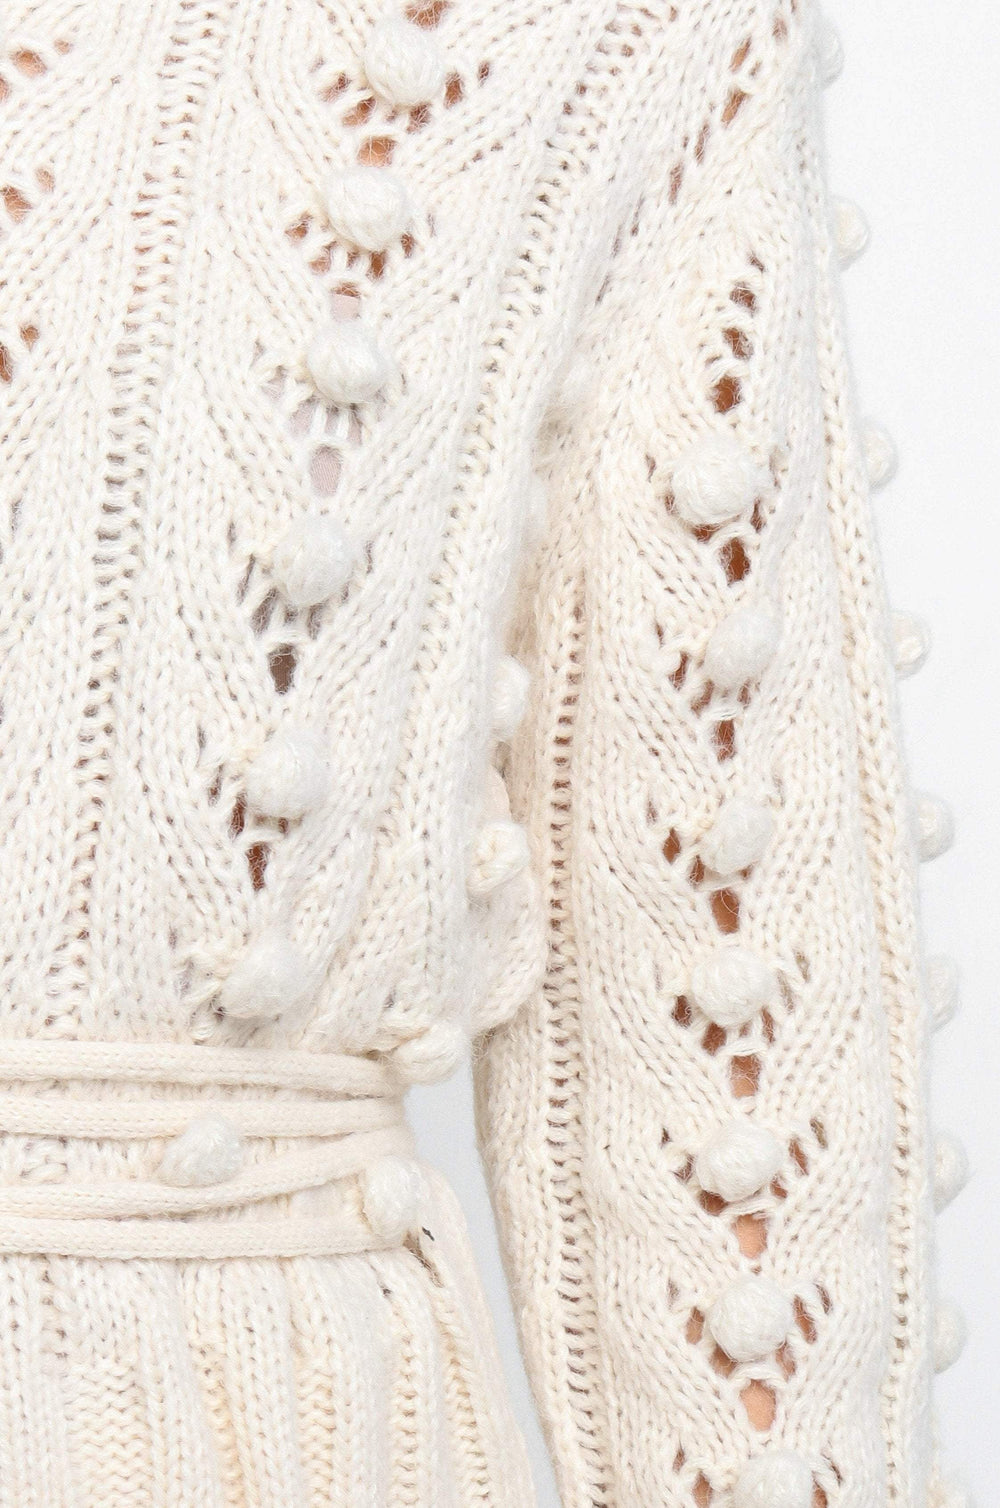 Petal and Pup USA KNITWEAR Orchid Knit - Cream